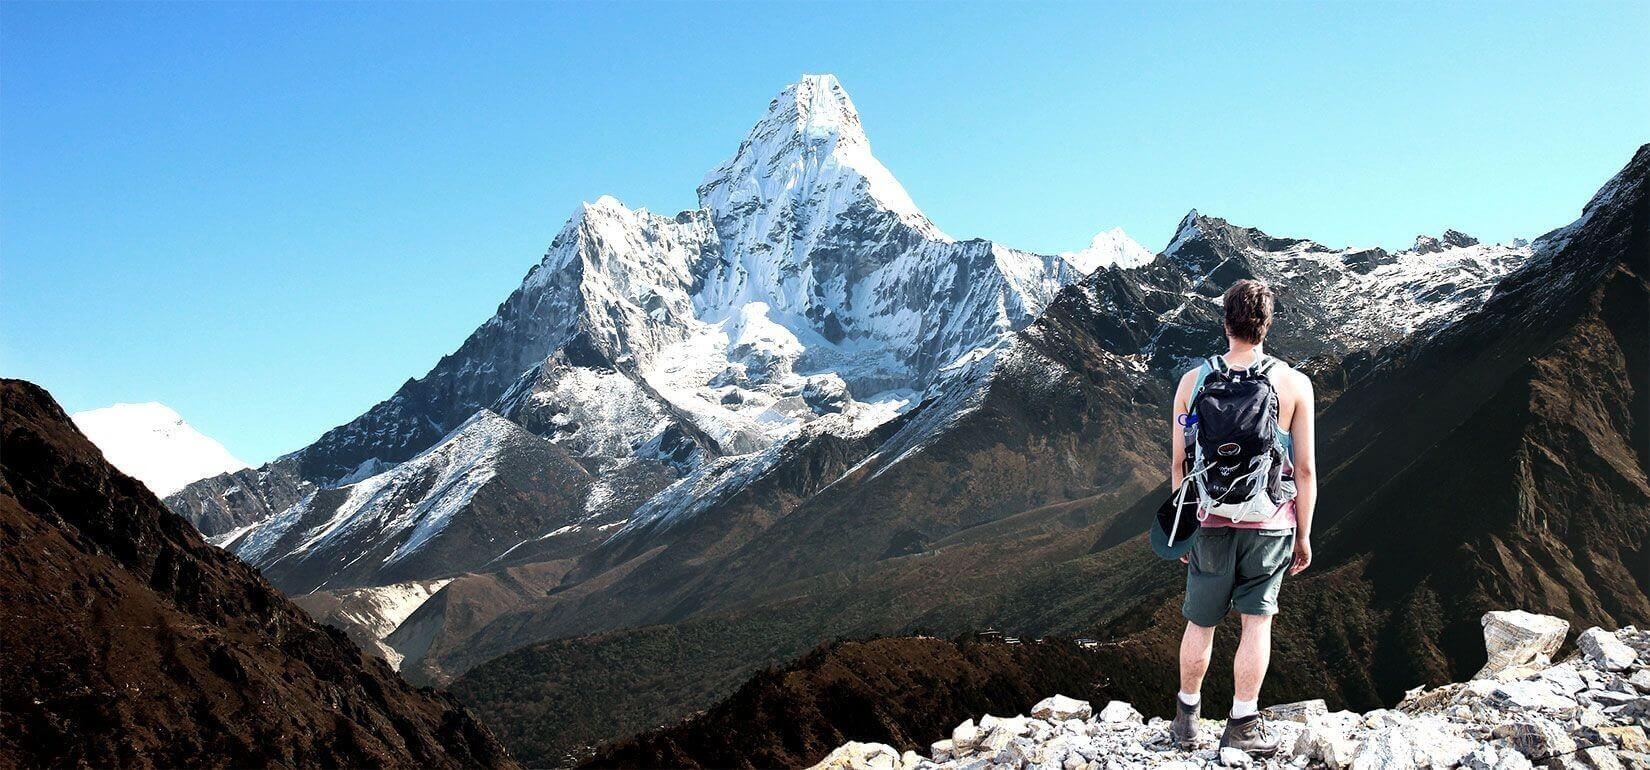 Explore Khumbu Area (Mt. Everest)